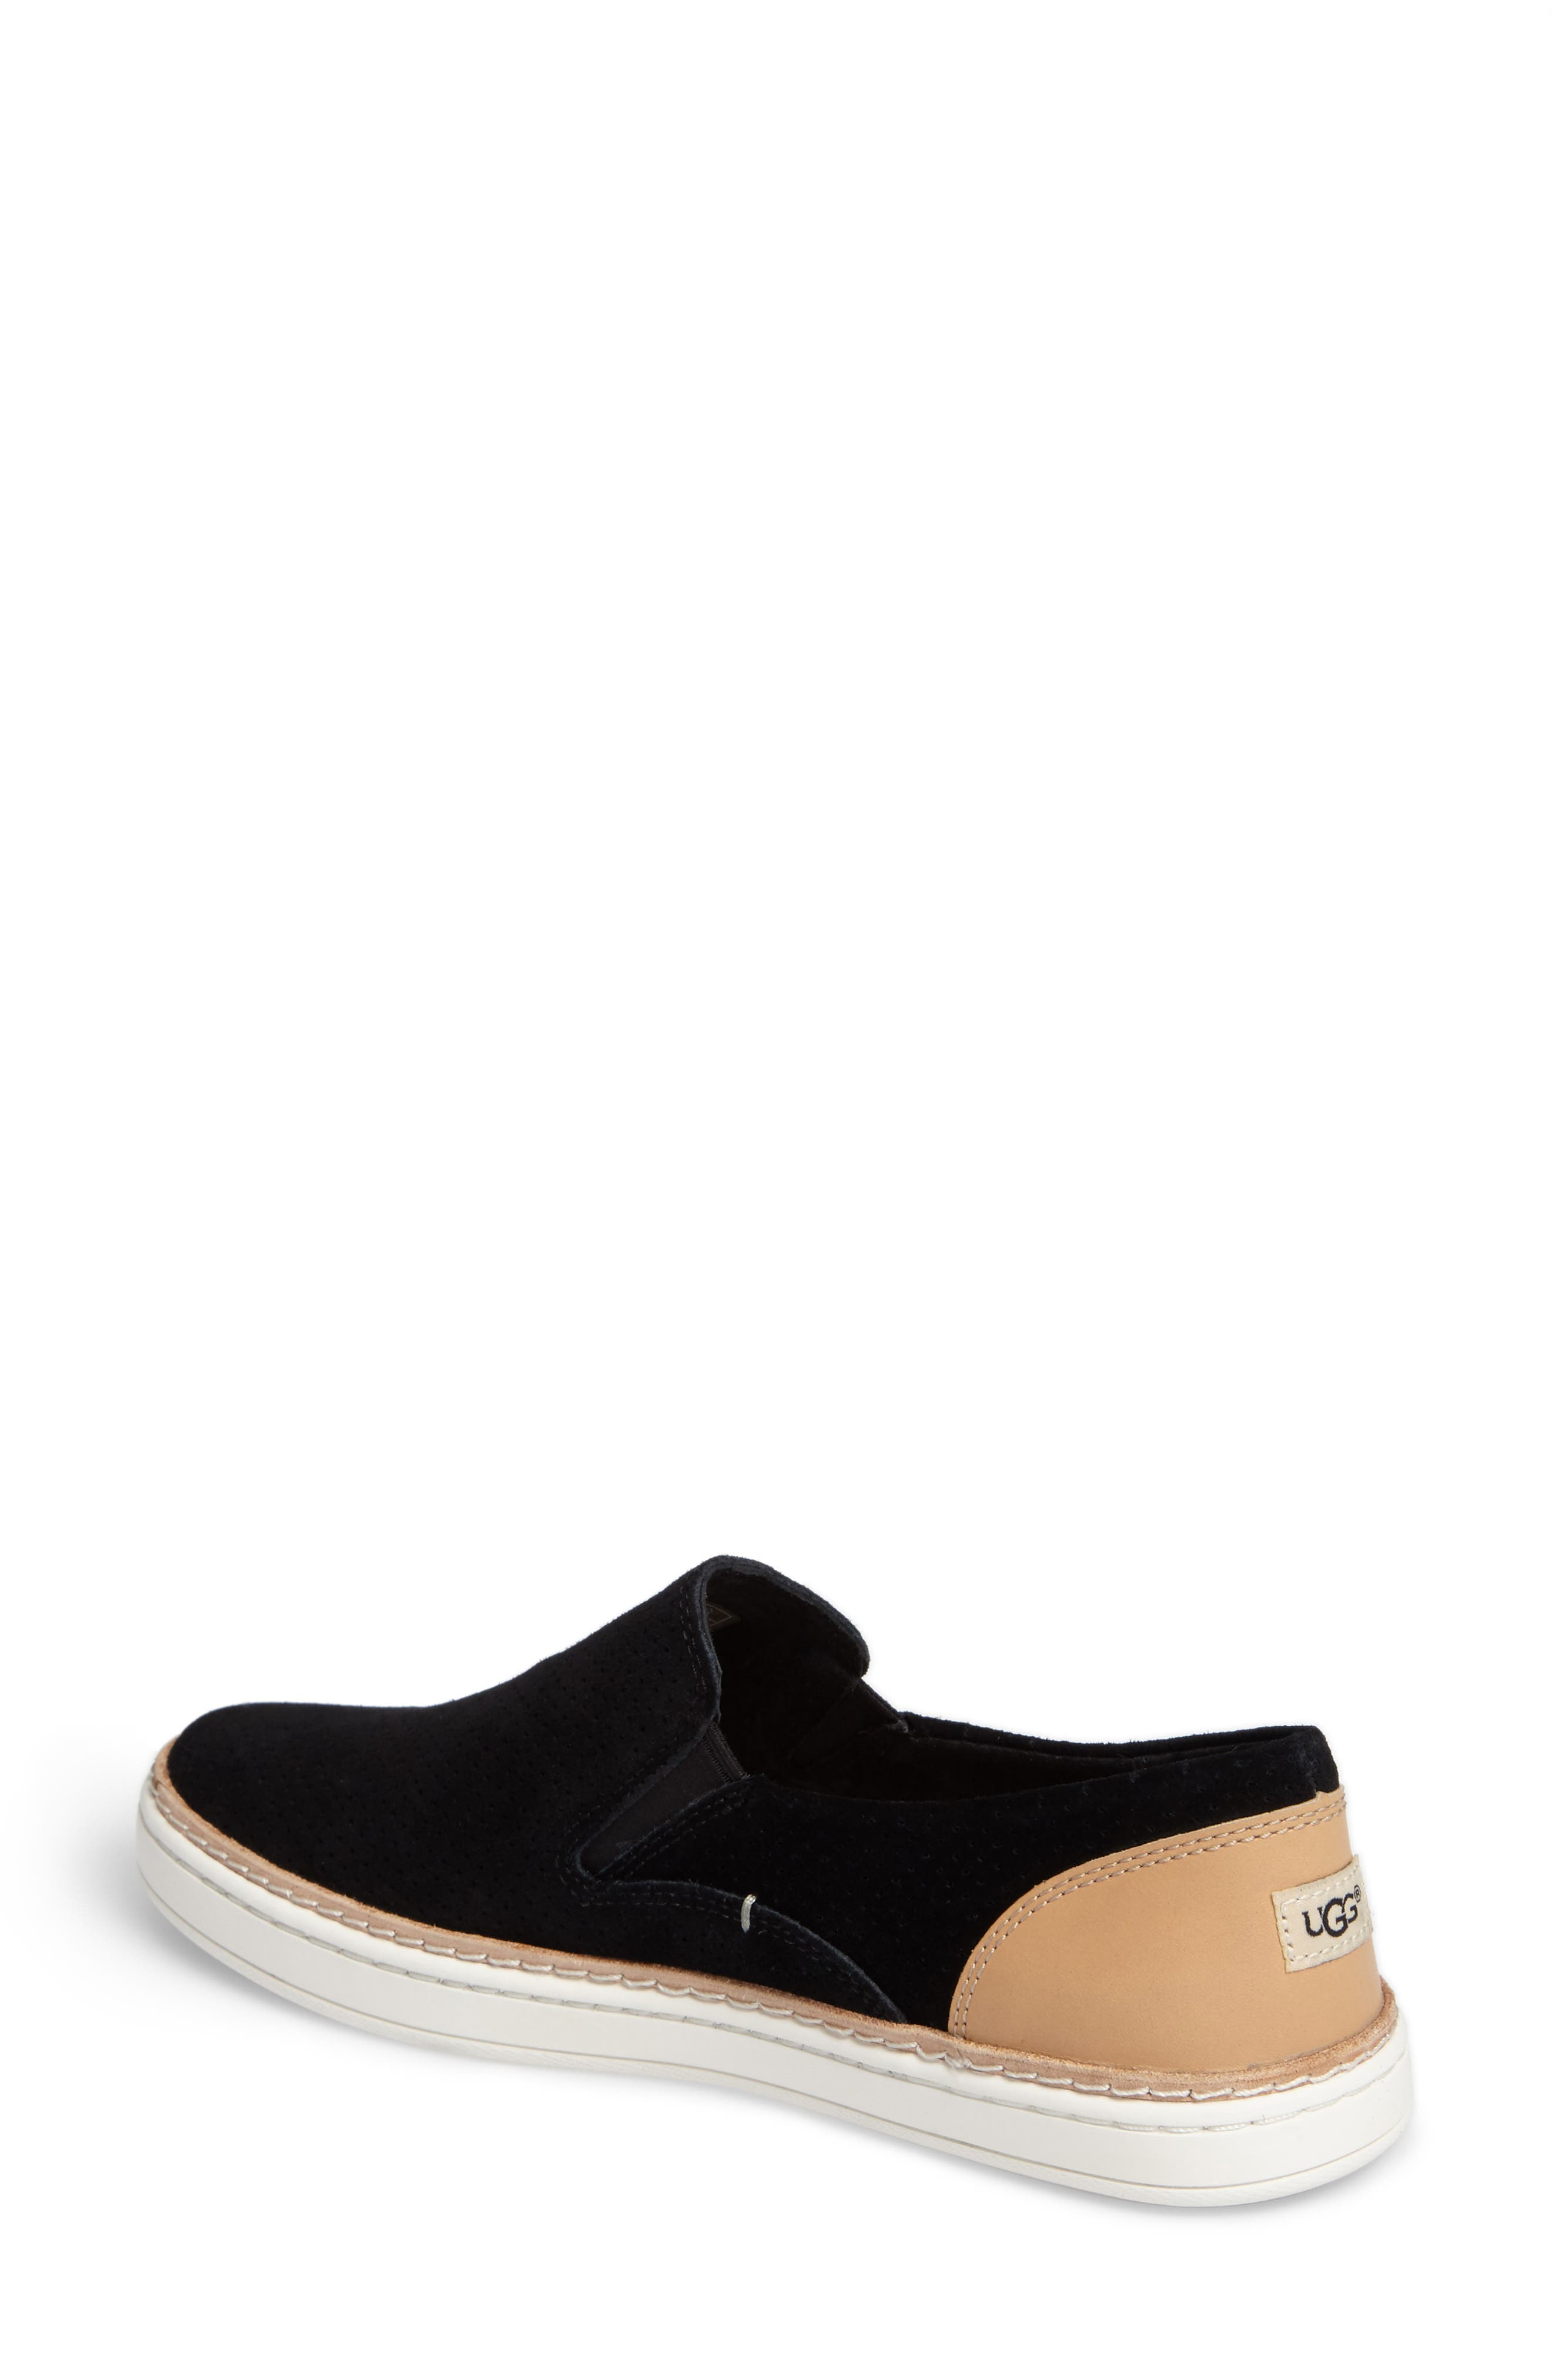 Adley Slip-On Sneaker,                             Alternate thumbnail 2, color,                             001